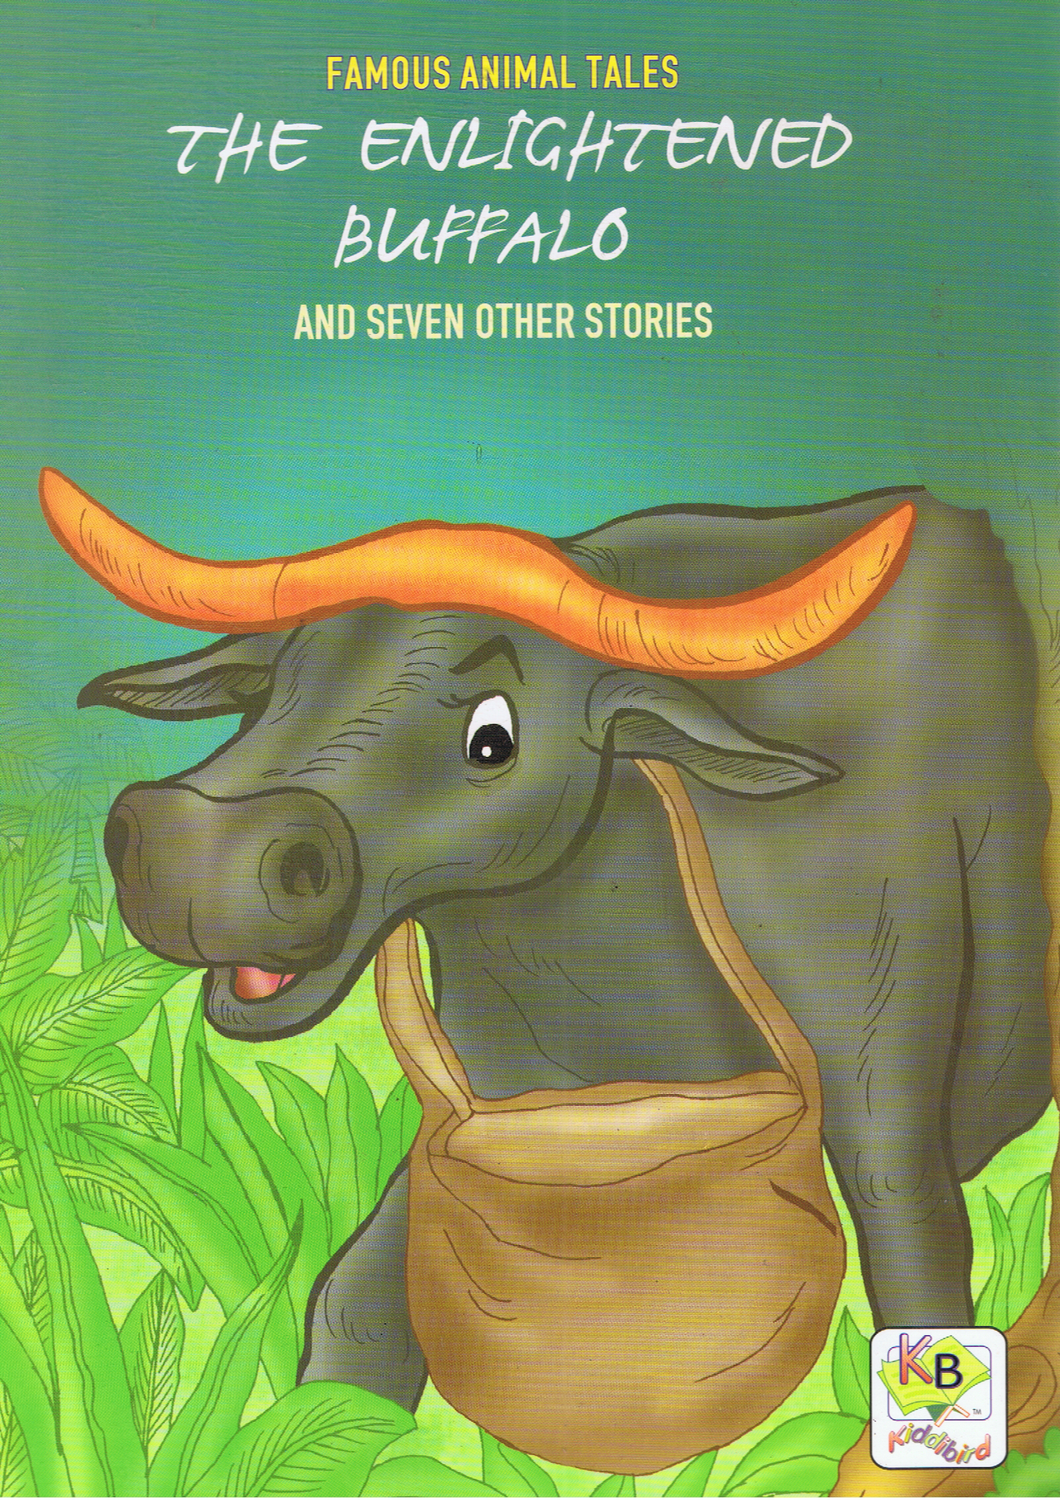 Famous Animal Tales The Enlightened Buffalo